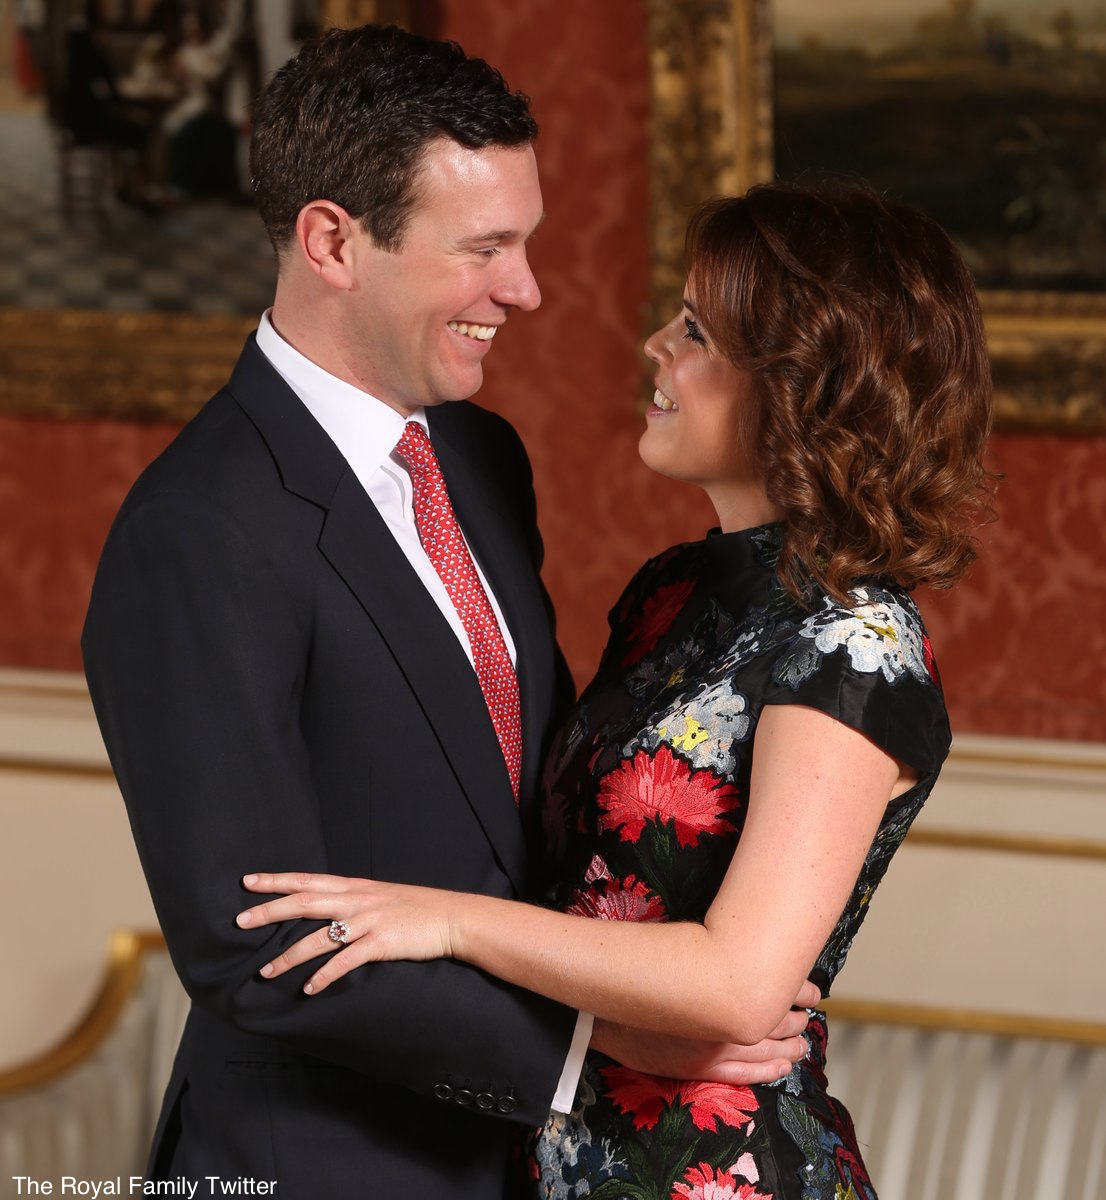 Princess Eugenie Jack Brooksbank Engagement Photo #1 Erdem Hetty Dress